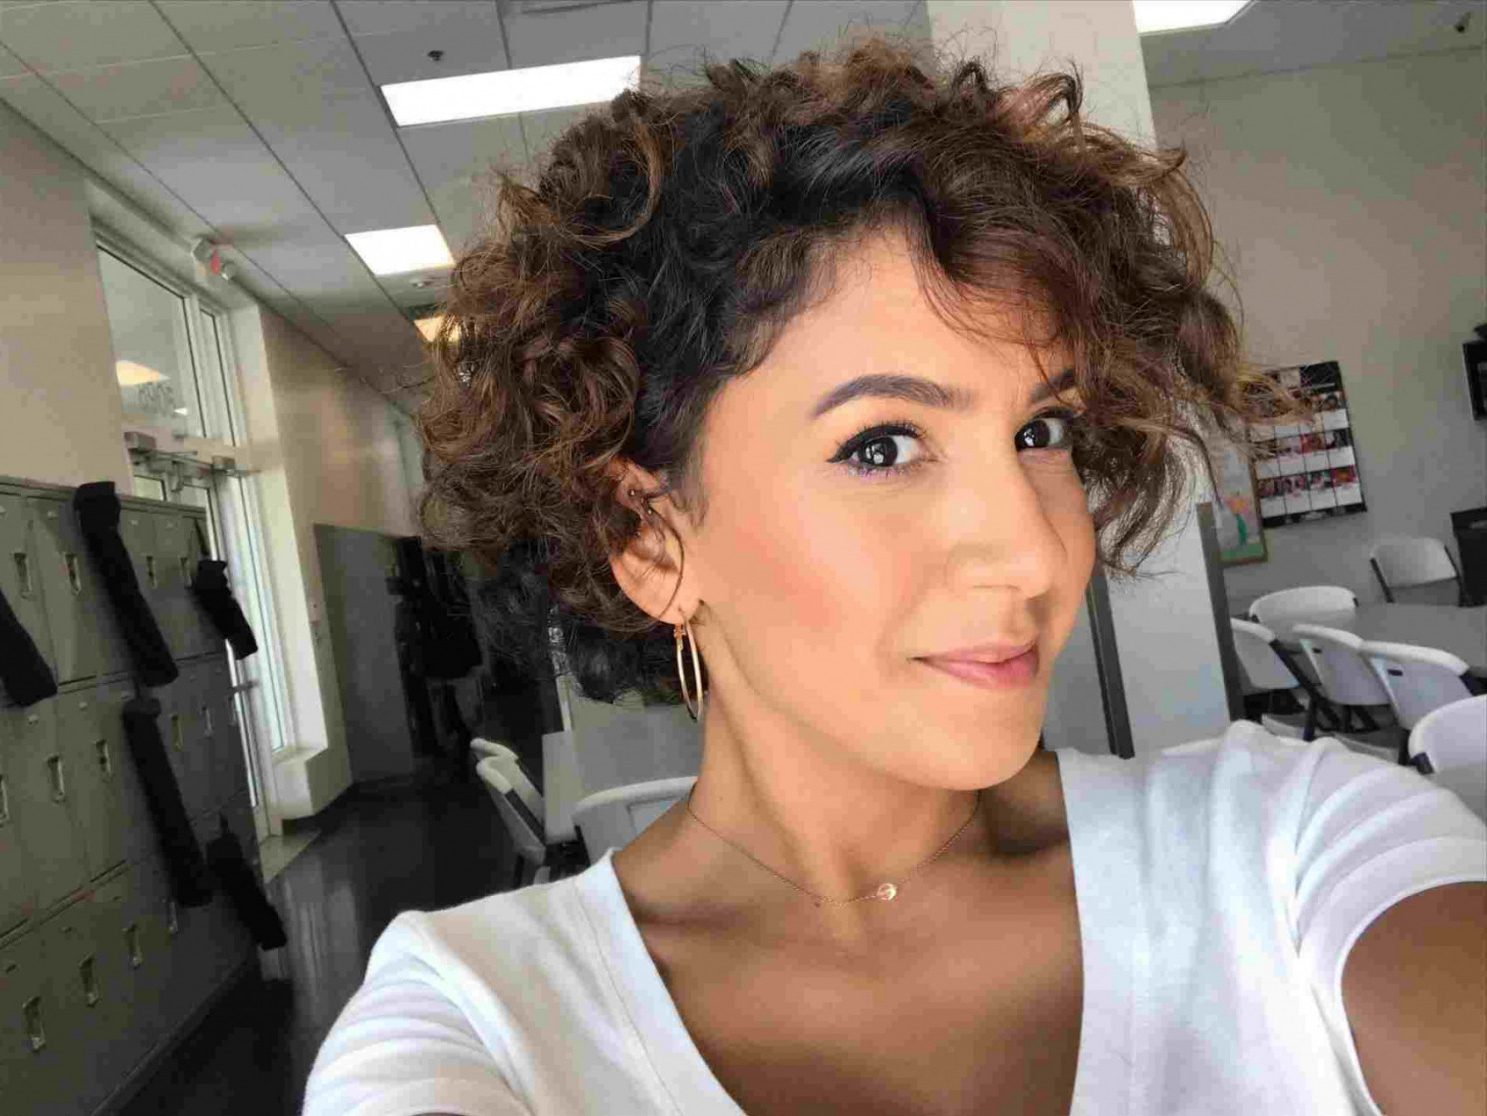 Latest Medium Hairstyles For Round Faces Curly Hair Inside Medium Bob Haircut Curly Hair Round Face Length Curly Hairstyles For (View 11 of 20)